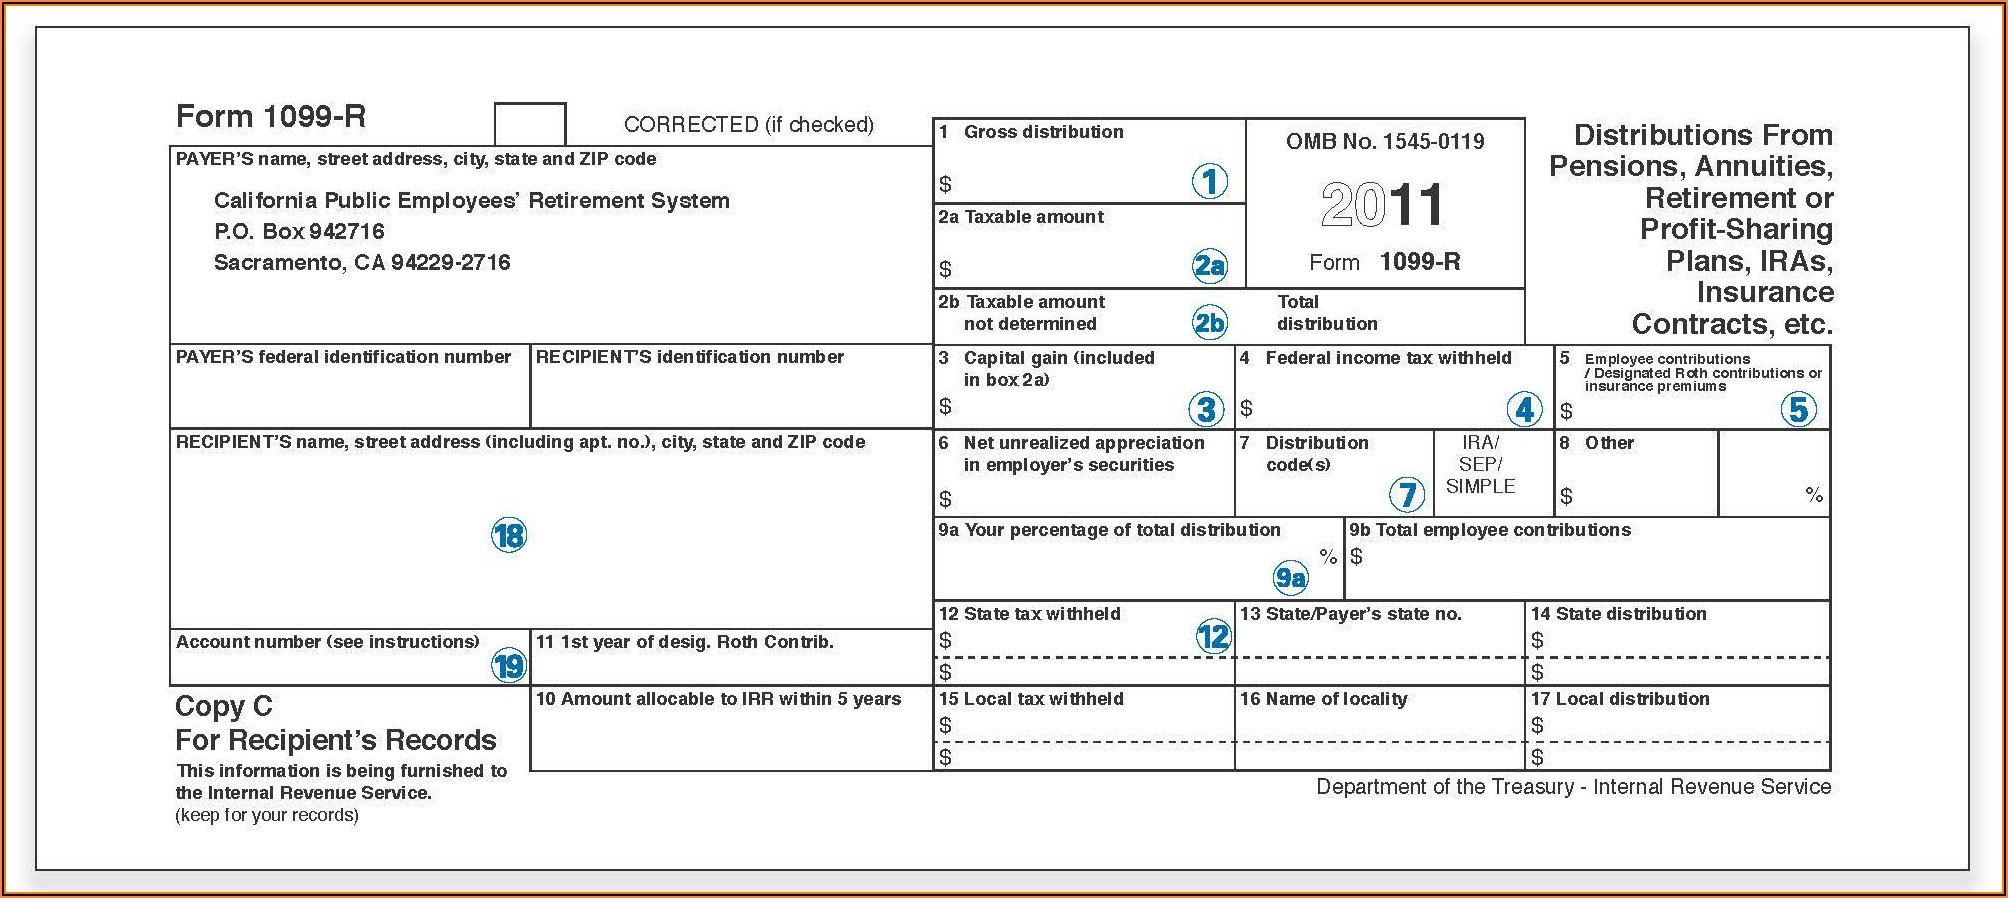 Where To Get Form 1099 R